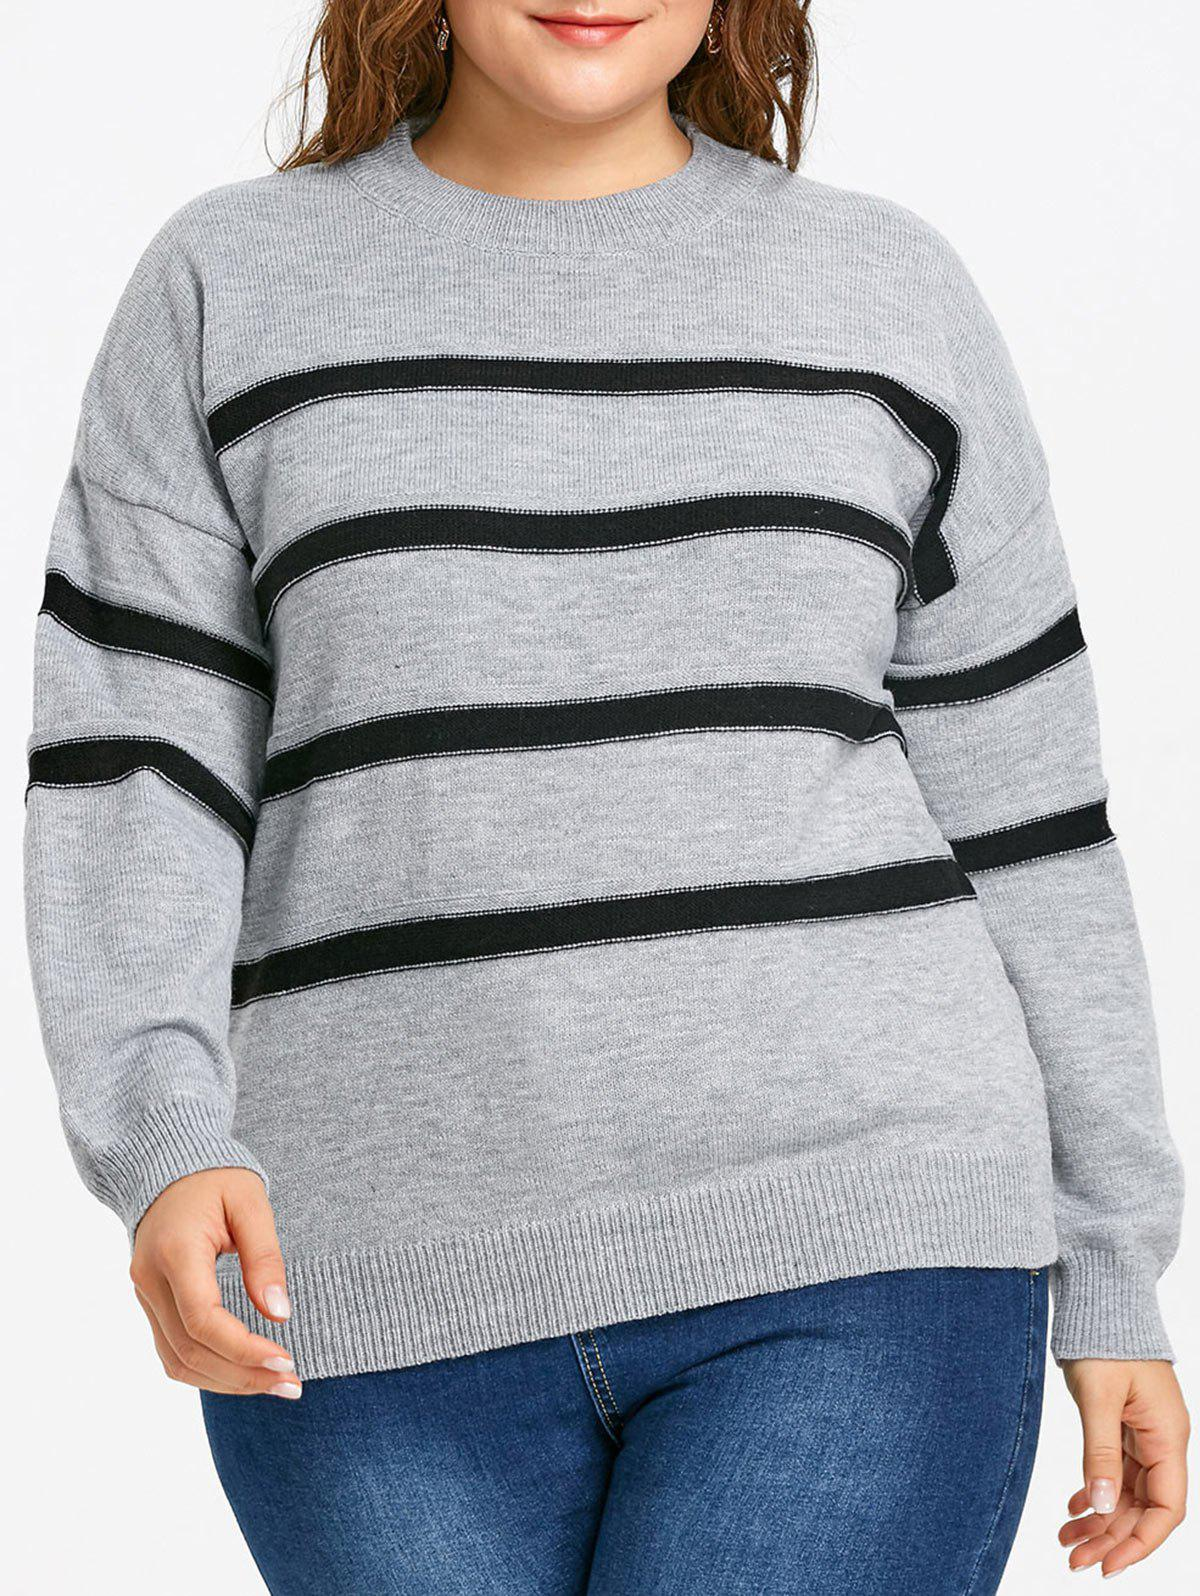 Drop Shoulder Striped Plus Size Jumper Sweater 241489201